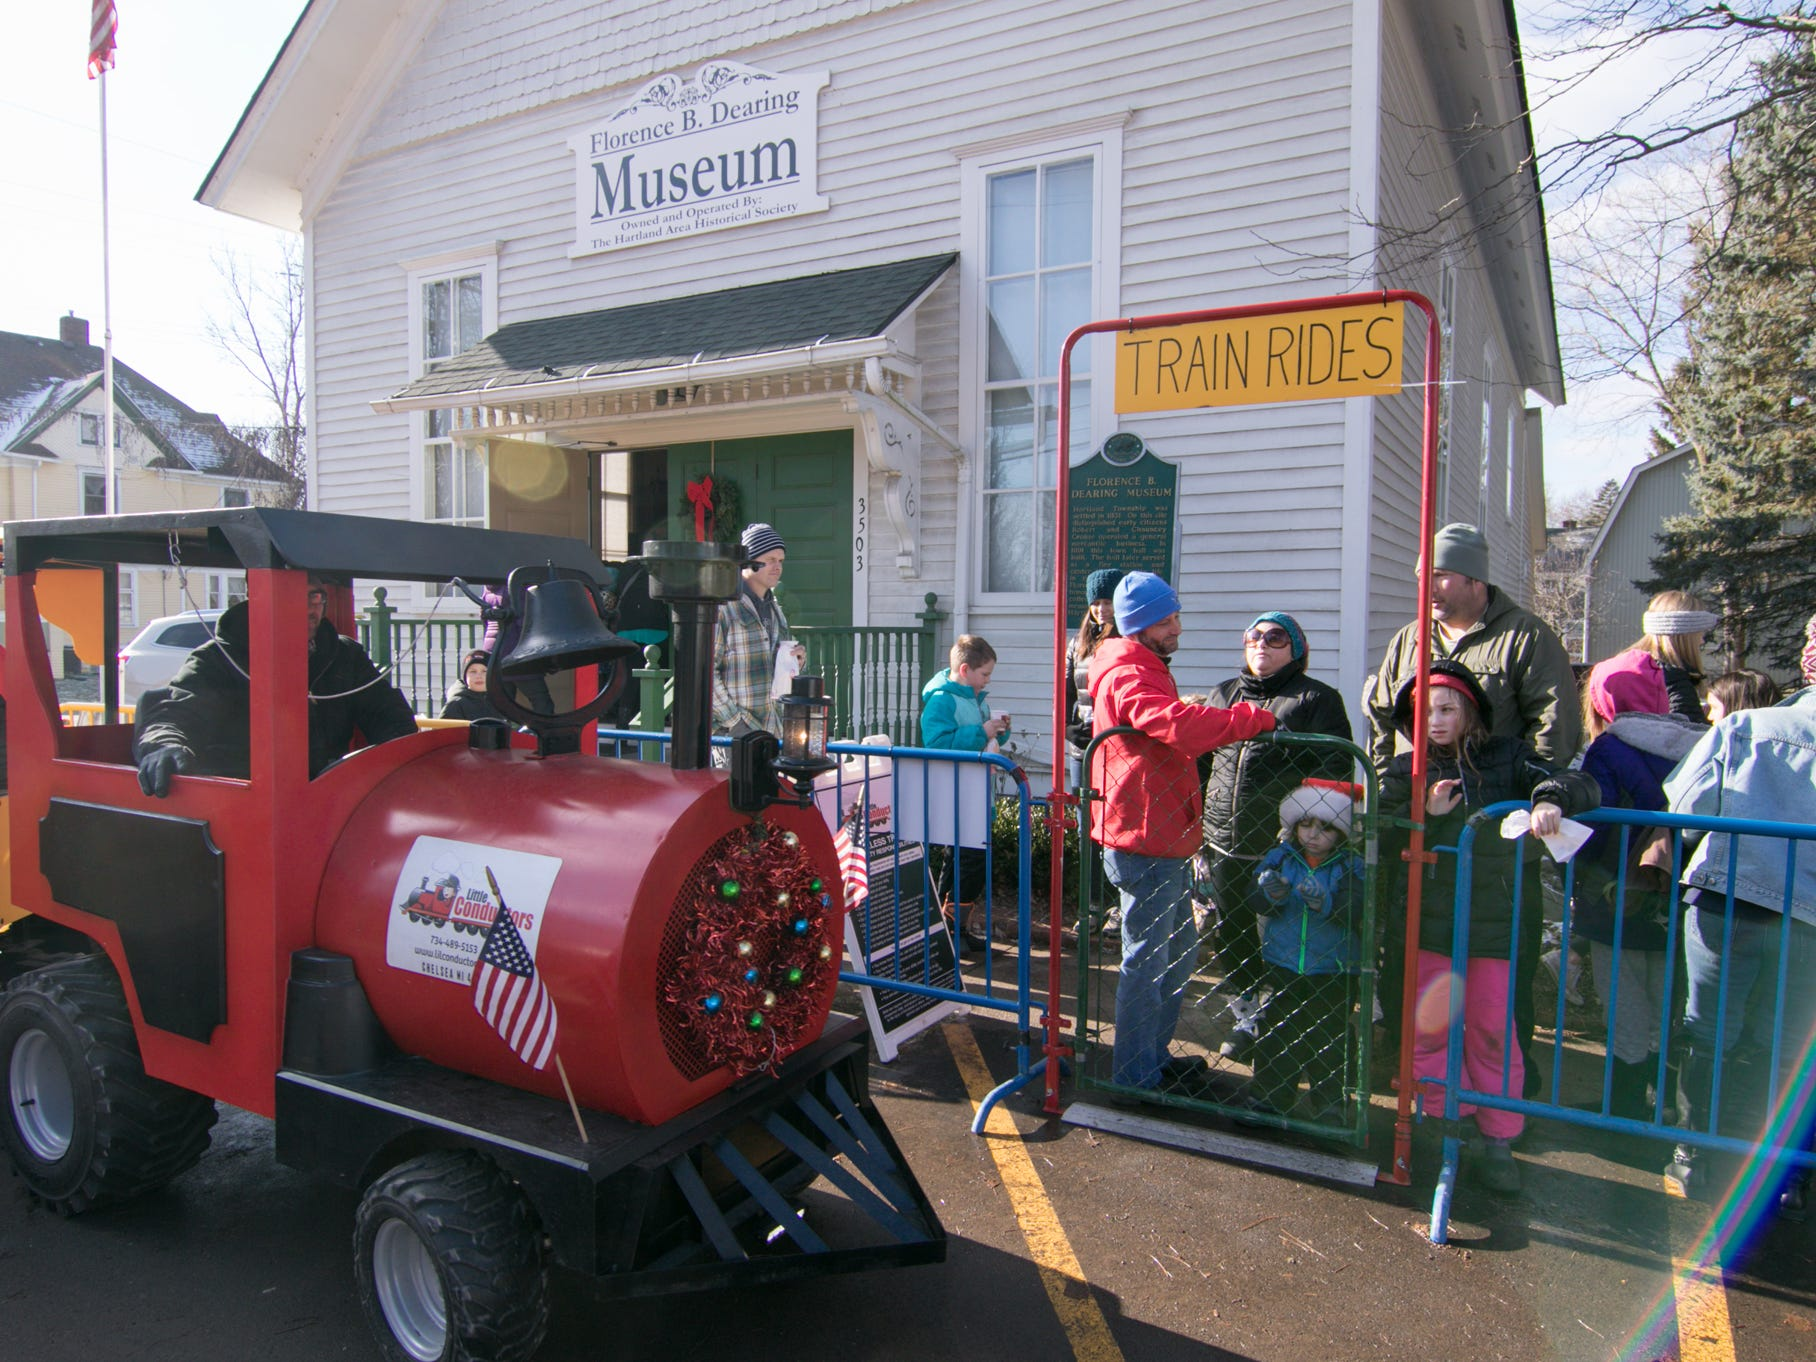 Polar Express Day attendees line up to board a miniature train provided by Little Conductors at the winter event Saturday, Dec. 8, 2018.